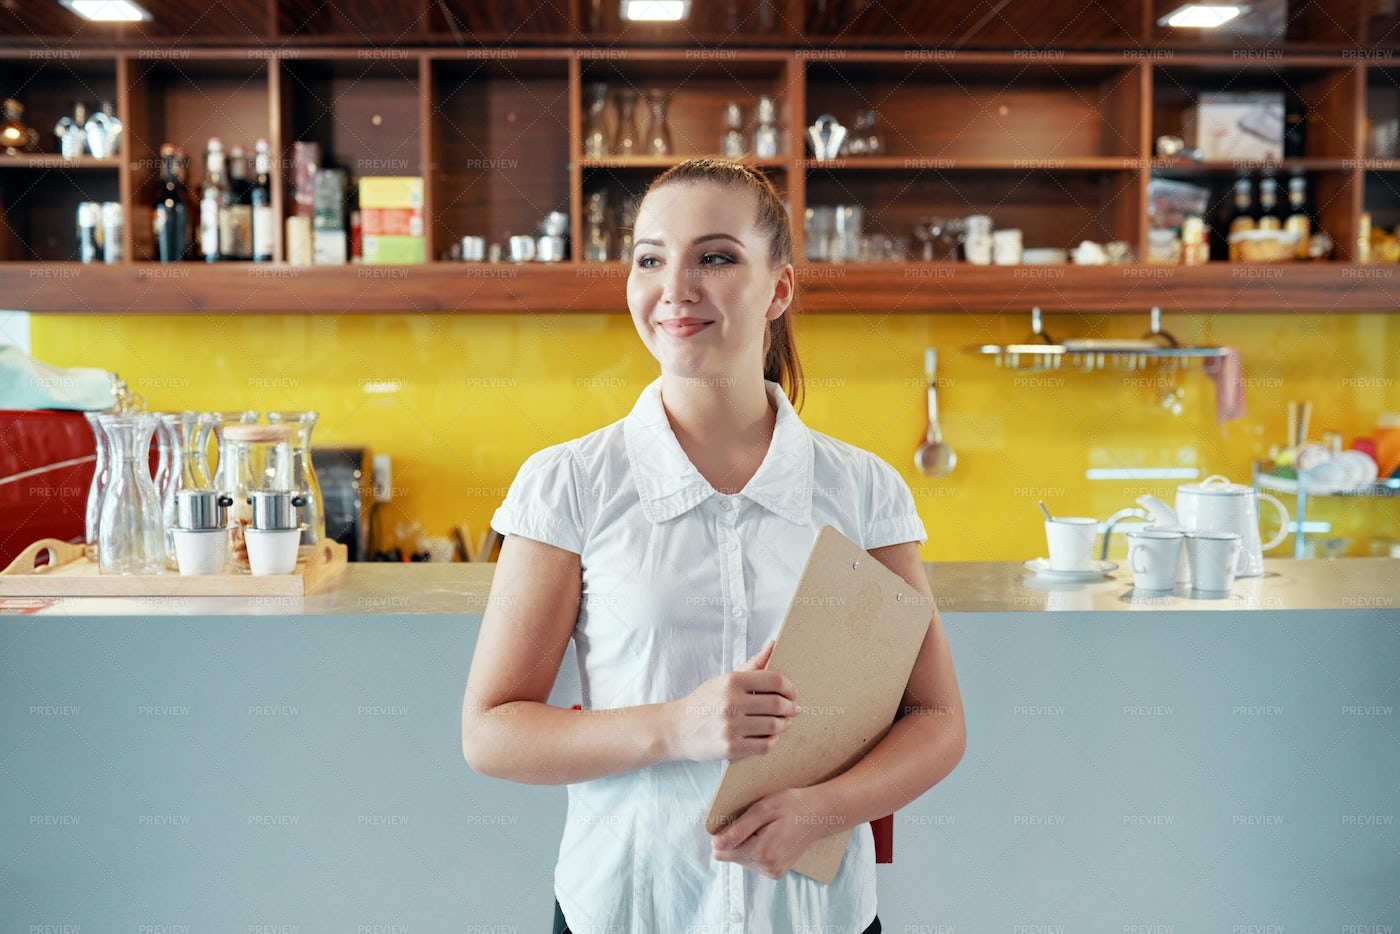 Content Woman With Clipboard...: Stock Photos